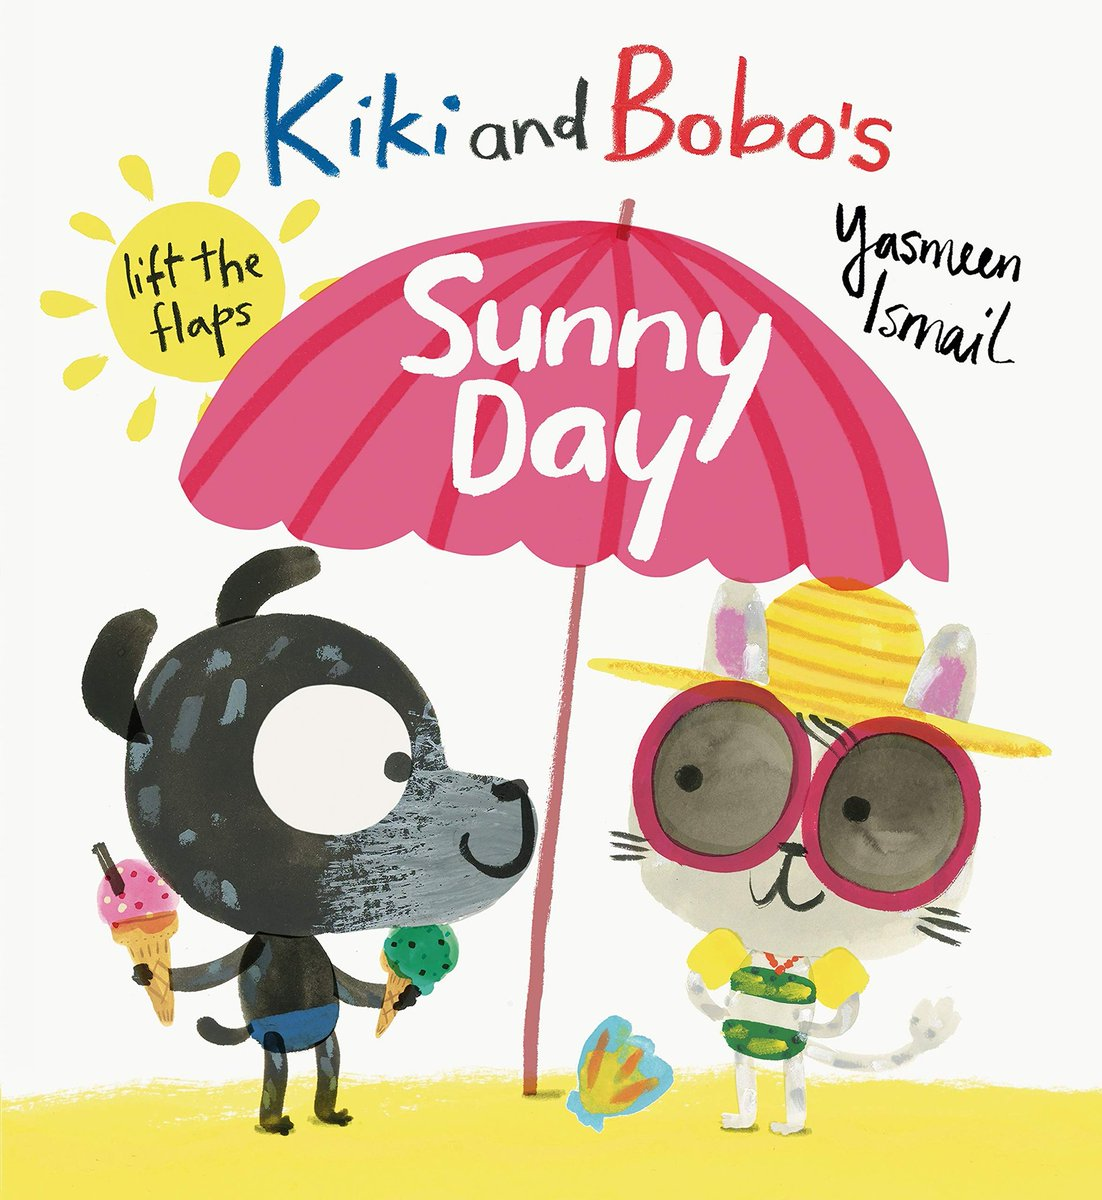 On a beautiful day like today we are being transported to the beach by reading Kiki and Bobo's Sunny Day by Yasmeen Ismail. This was one of the many beautiful books in the @BelfastHarbour Big Book Box given to all Belfast Sure Starts during lockdown. Supported by @arts_businessni https://t.co/69O1NL6tTk